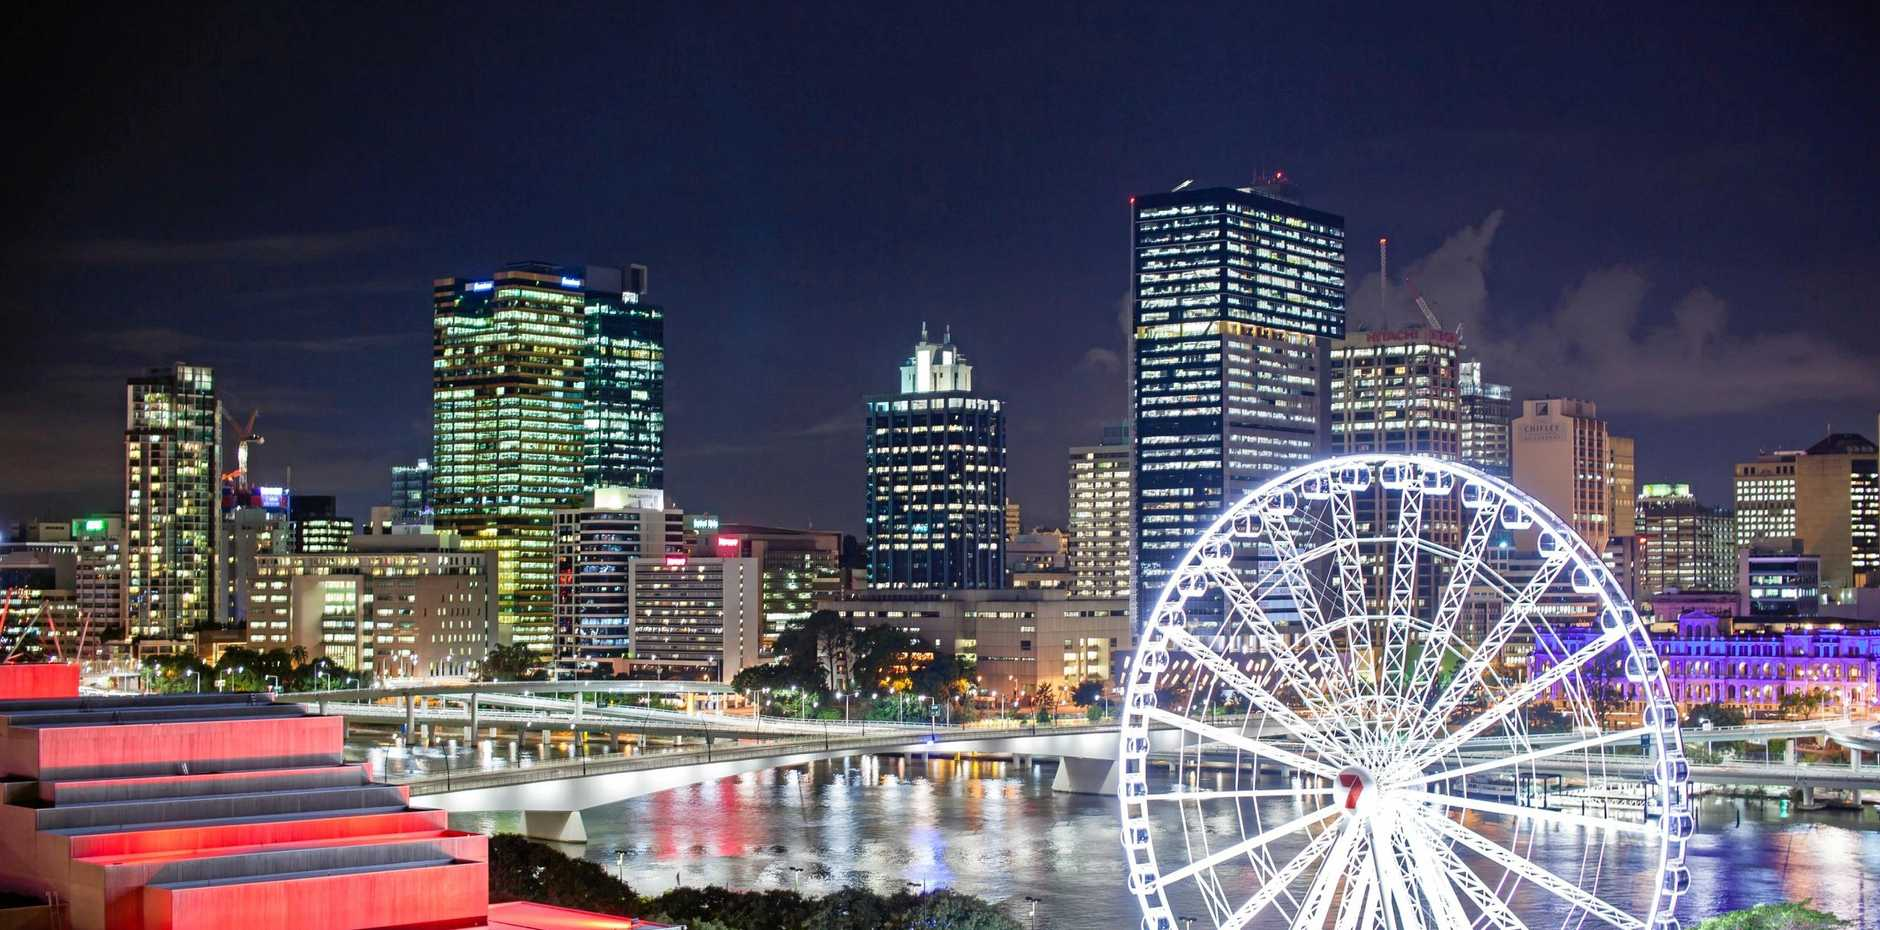 The views from the north-east balconies of Rydges South Bank are stunning at night time, looking out on to an illuminated cityscape and the Brisbane River.